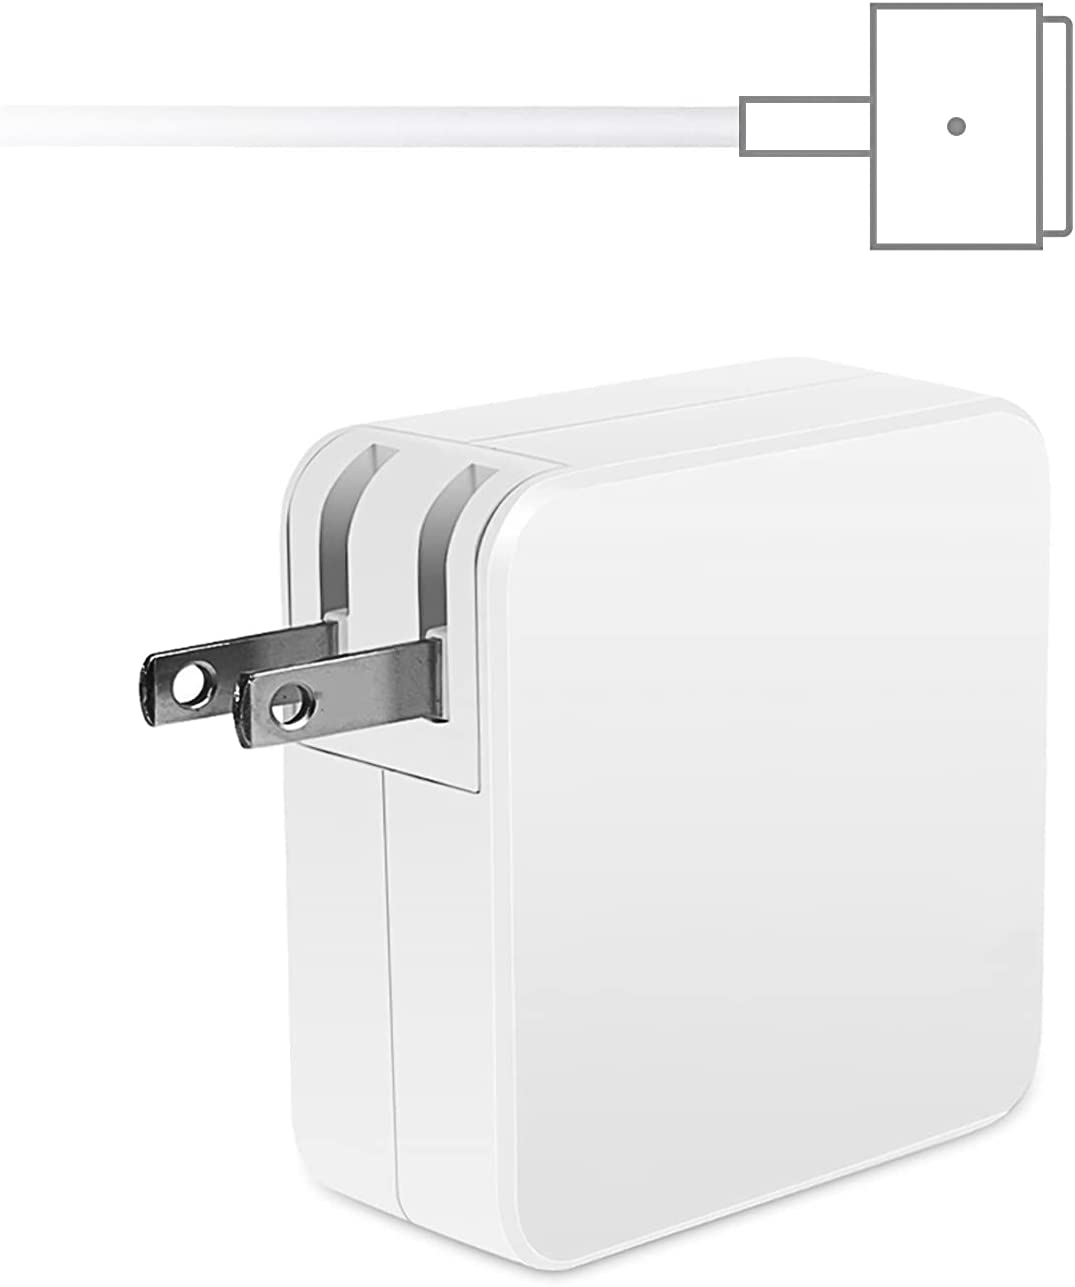 Compatible with MacBook Pro Charger with Cord - Replacement Magnetic 60W T-Tip, Universal Power Adapter Compatible for Apple Mac Book Charger/MacBook Air with 13-inch Retina Display(After 2012)